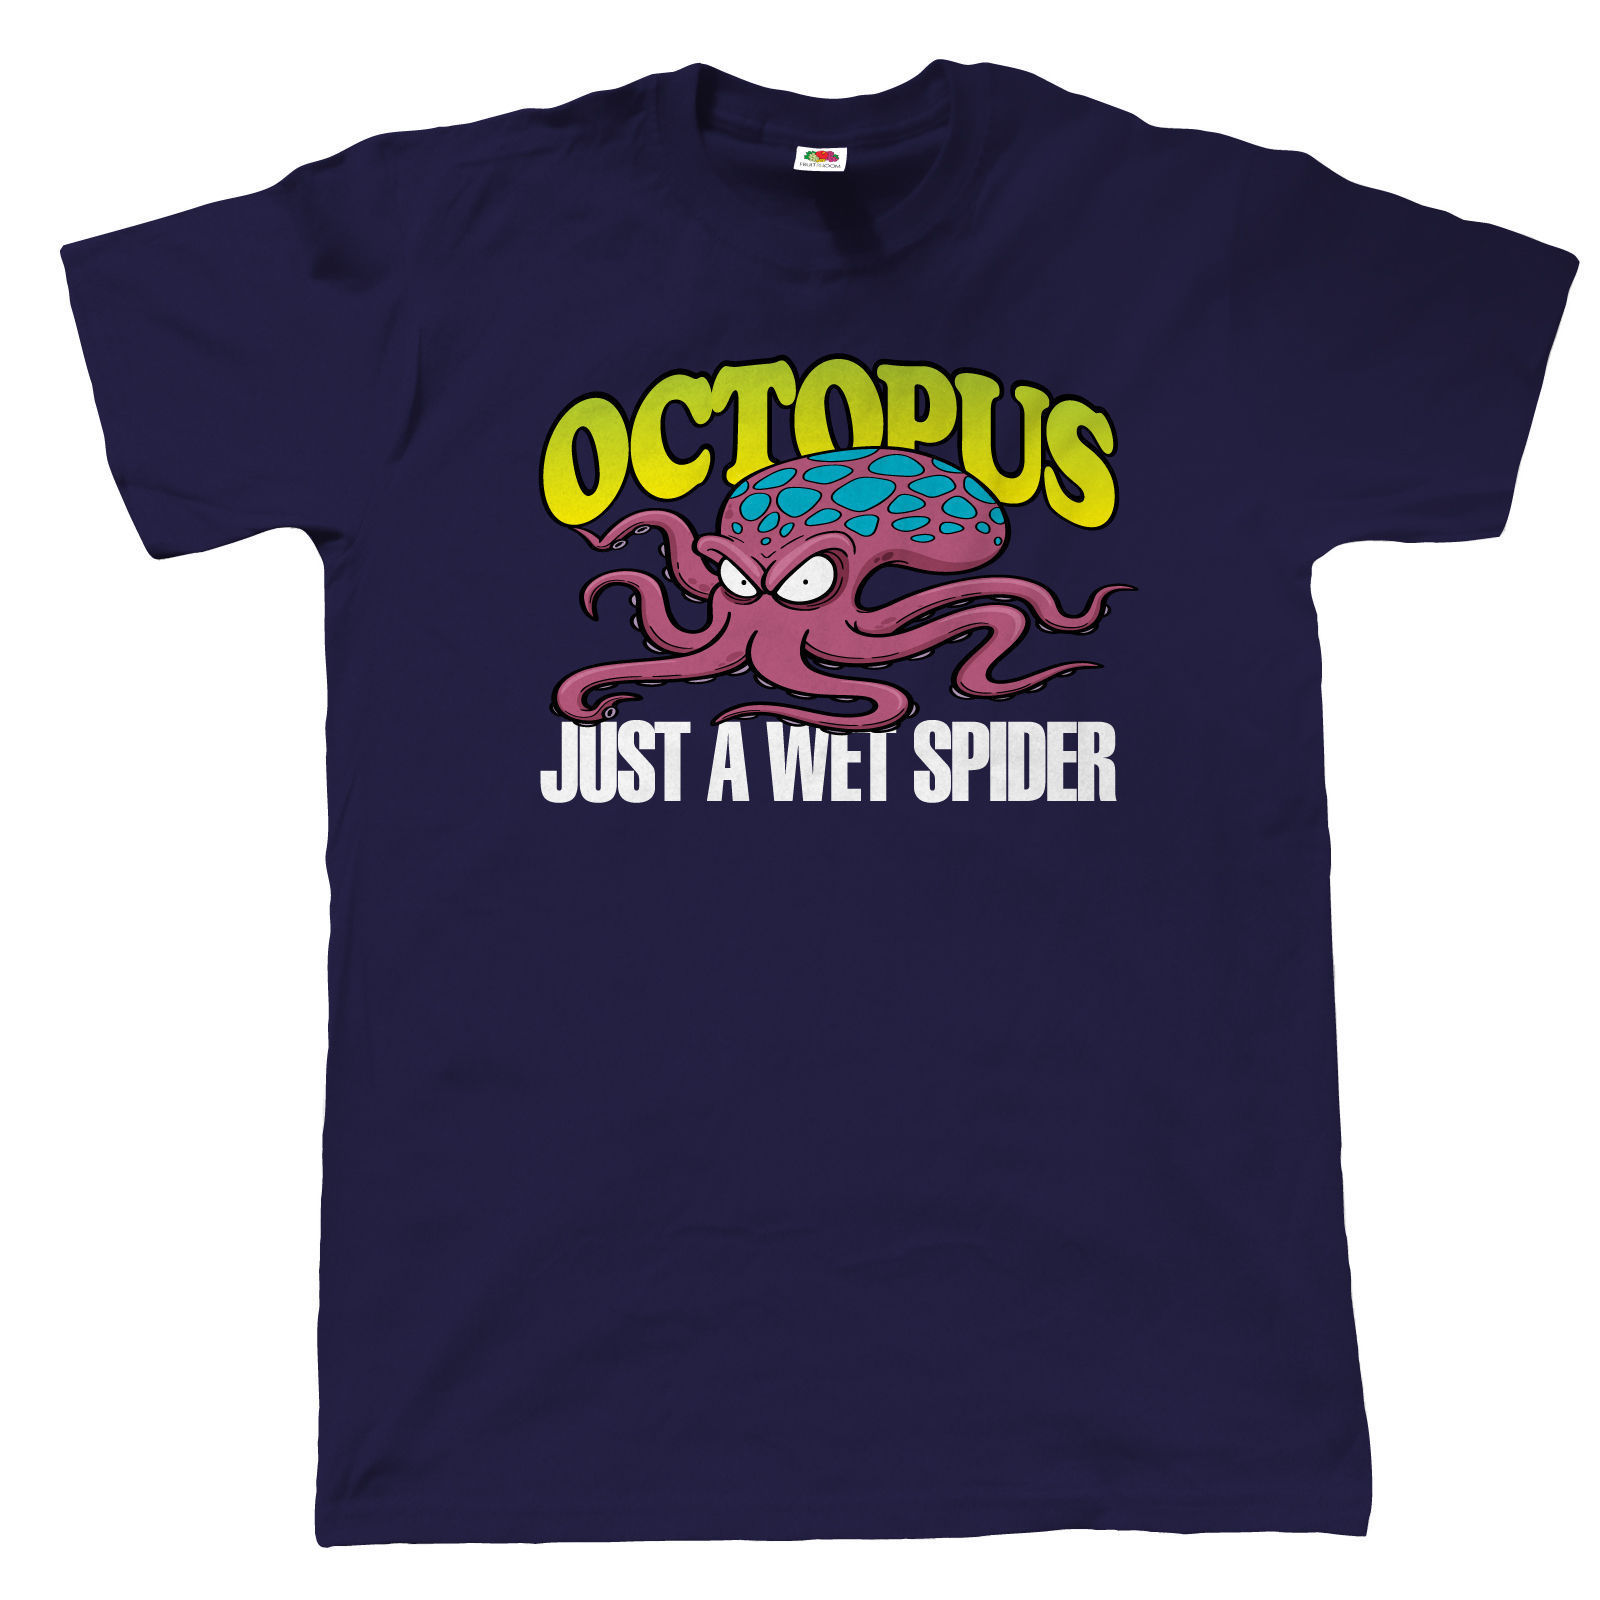 Octopus Wet Spider Mens Funny T Shirt Fathers Day Birthday Gift for Dad Grandad Funny Tops Tee New Unisex Funny in T Shirts from Men 39 s Clothing